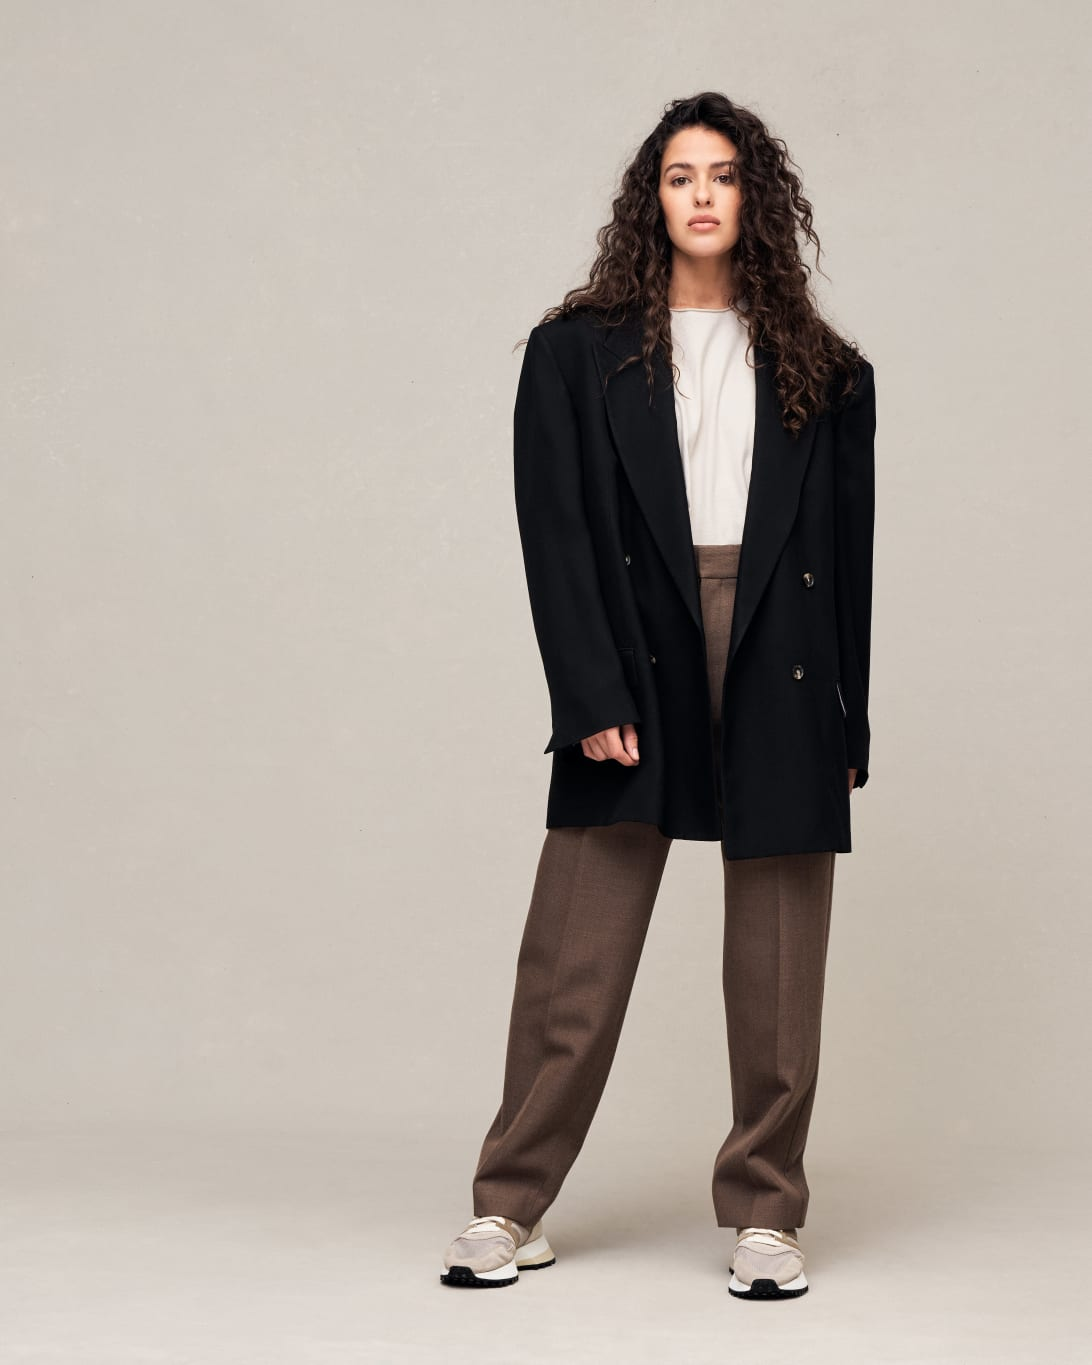 Seventh Collection | Fall/Winter Lookbook Look 31